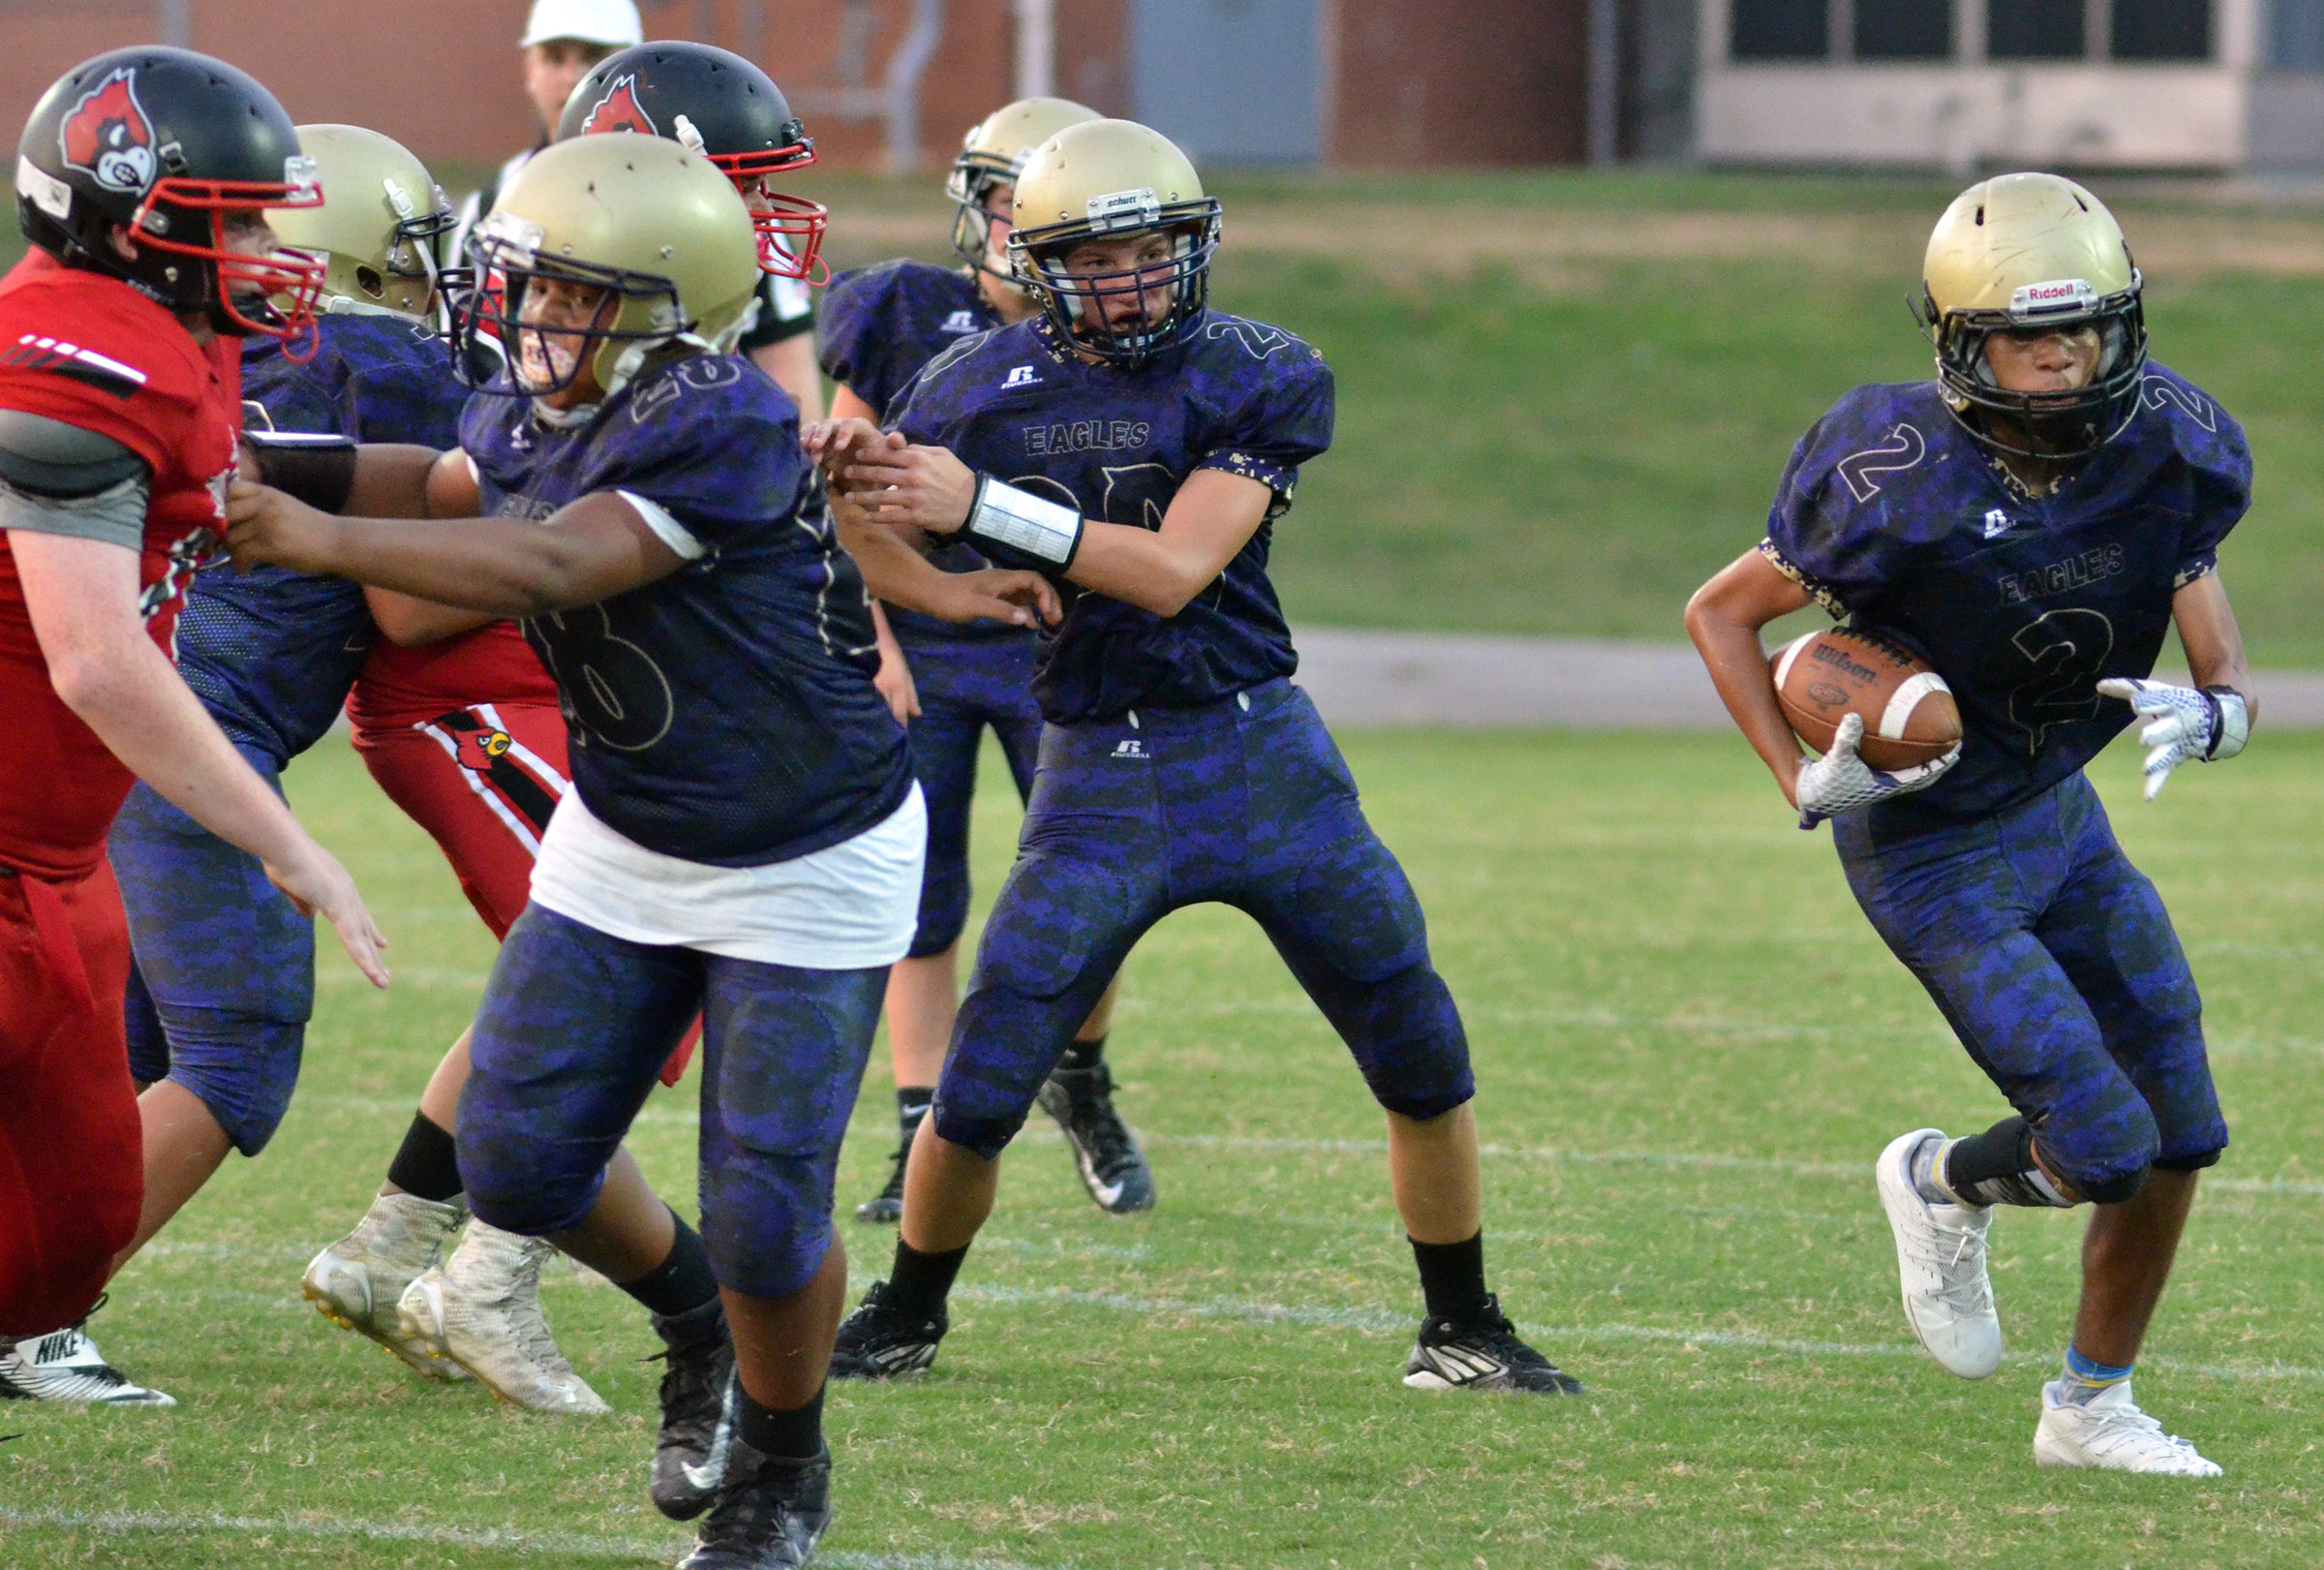 CMS eighth-grader Adrien Smith runs the ball.